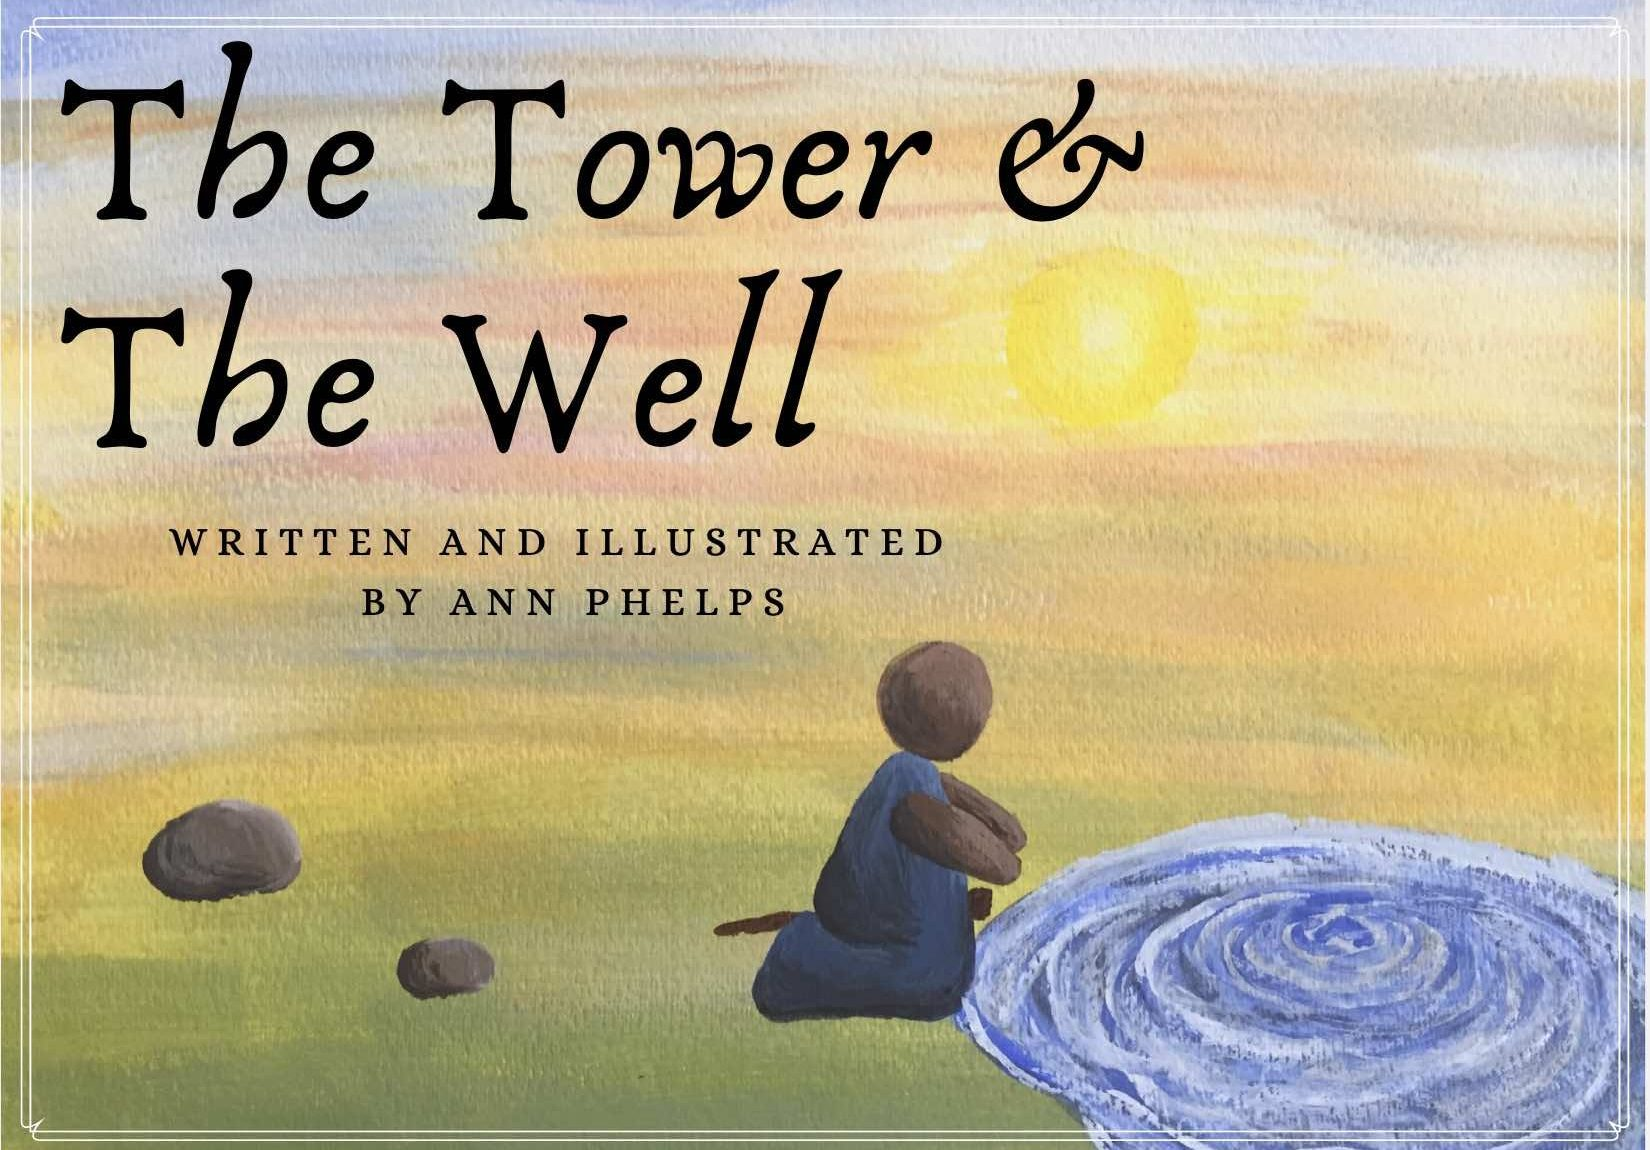 Ann Phelps wins award for a children's book six years in the making